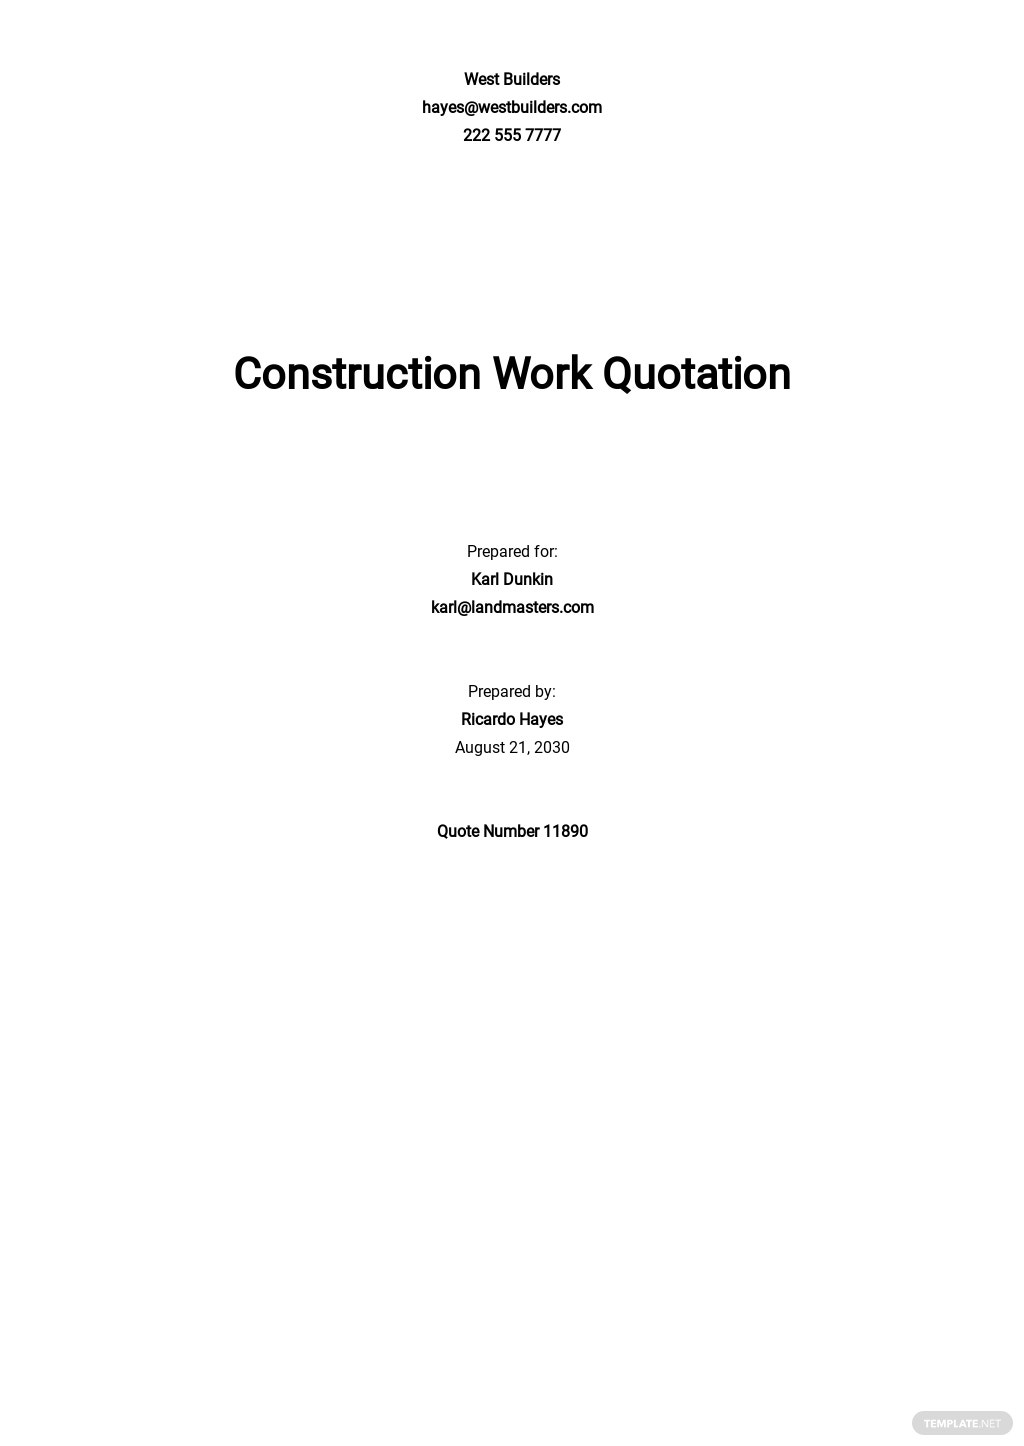 Construction Work Quotation Template